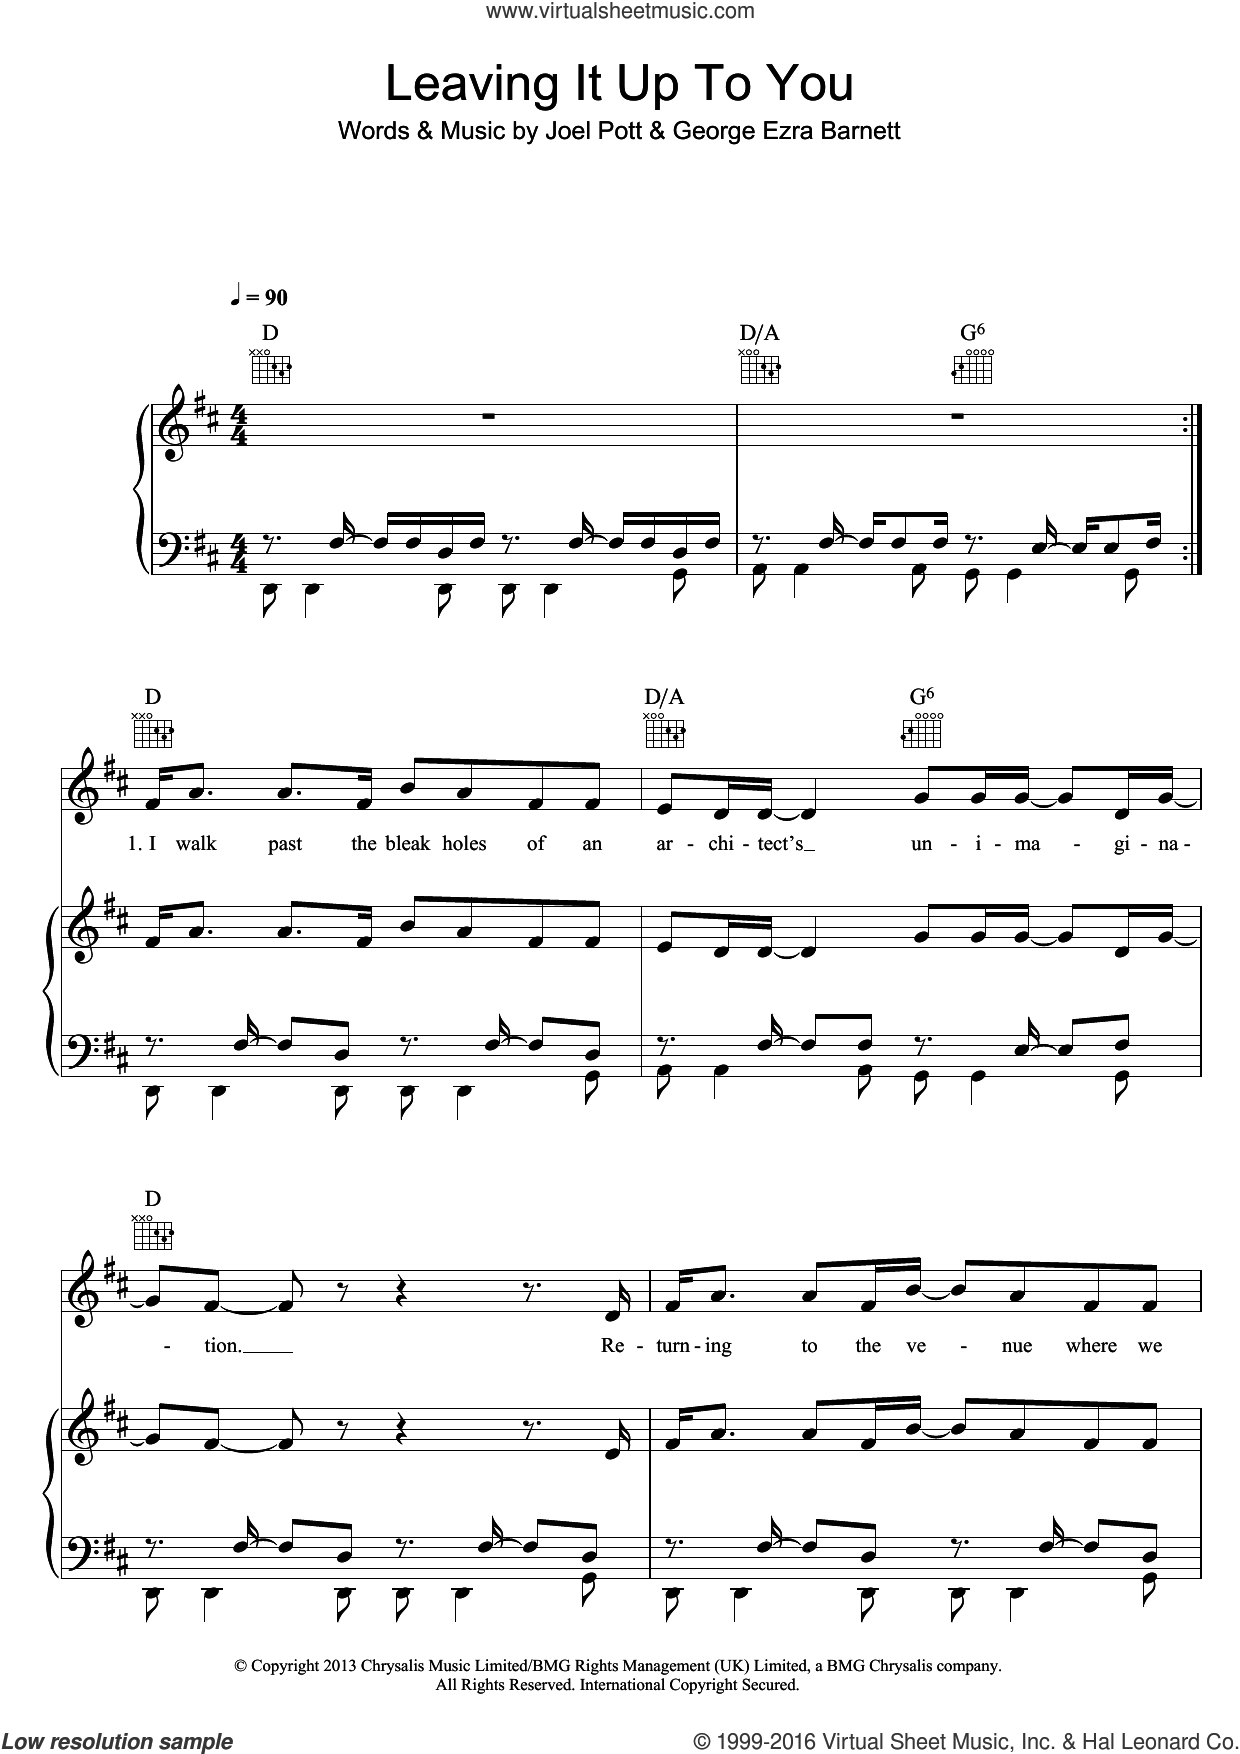 Leaving It Up To You sheet music for voice, piano or guitar by George Ezra Barnett